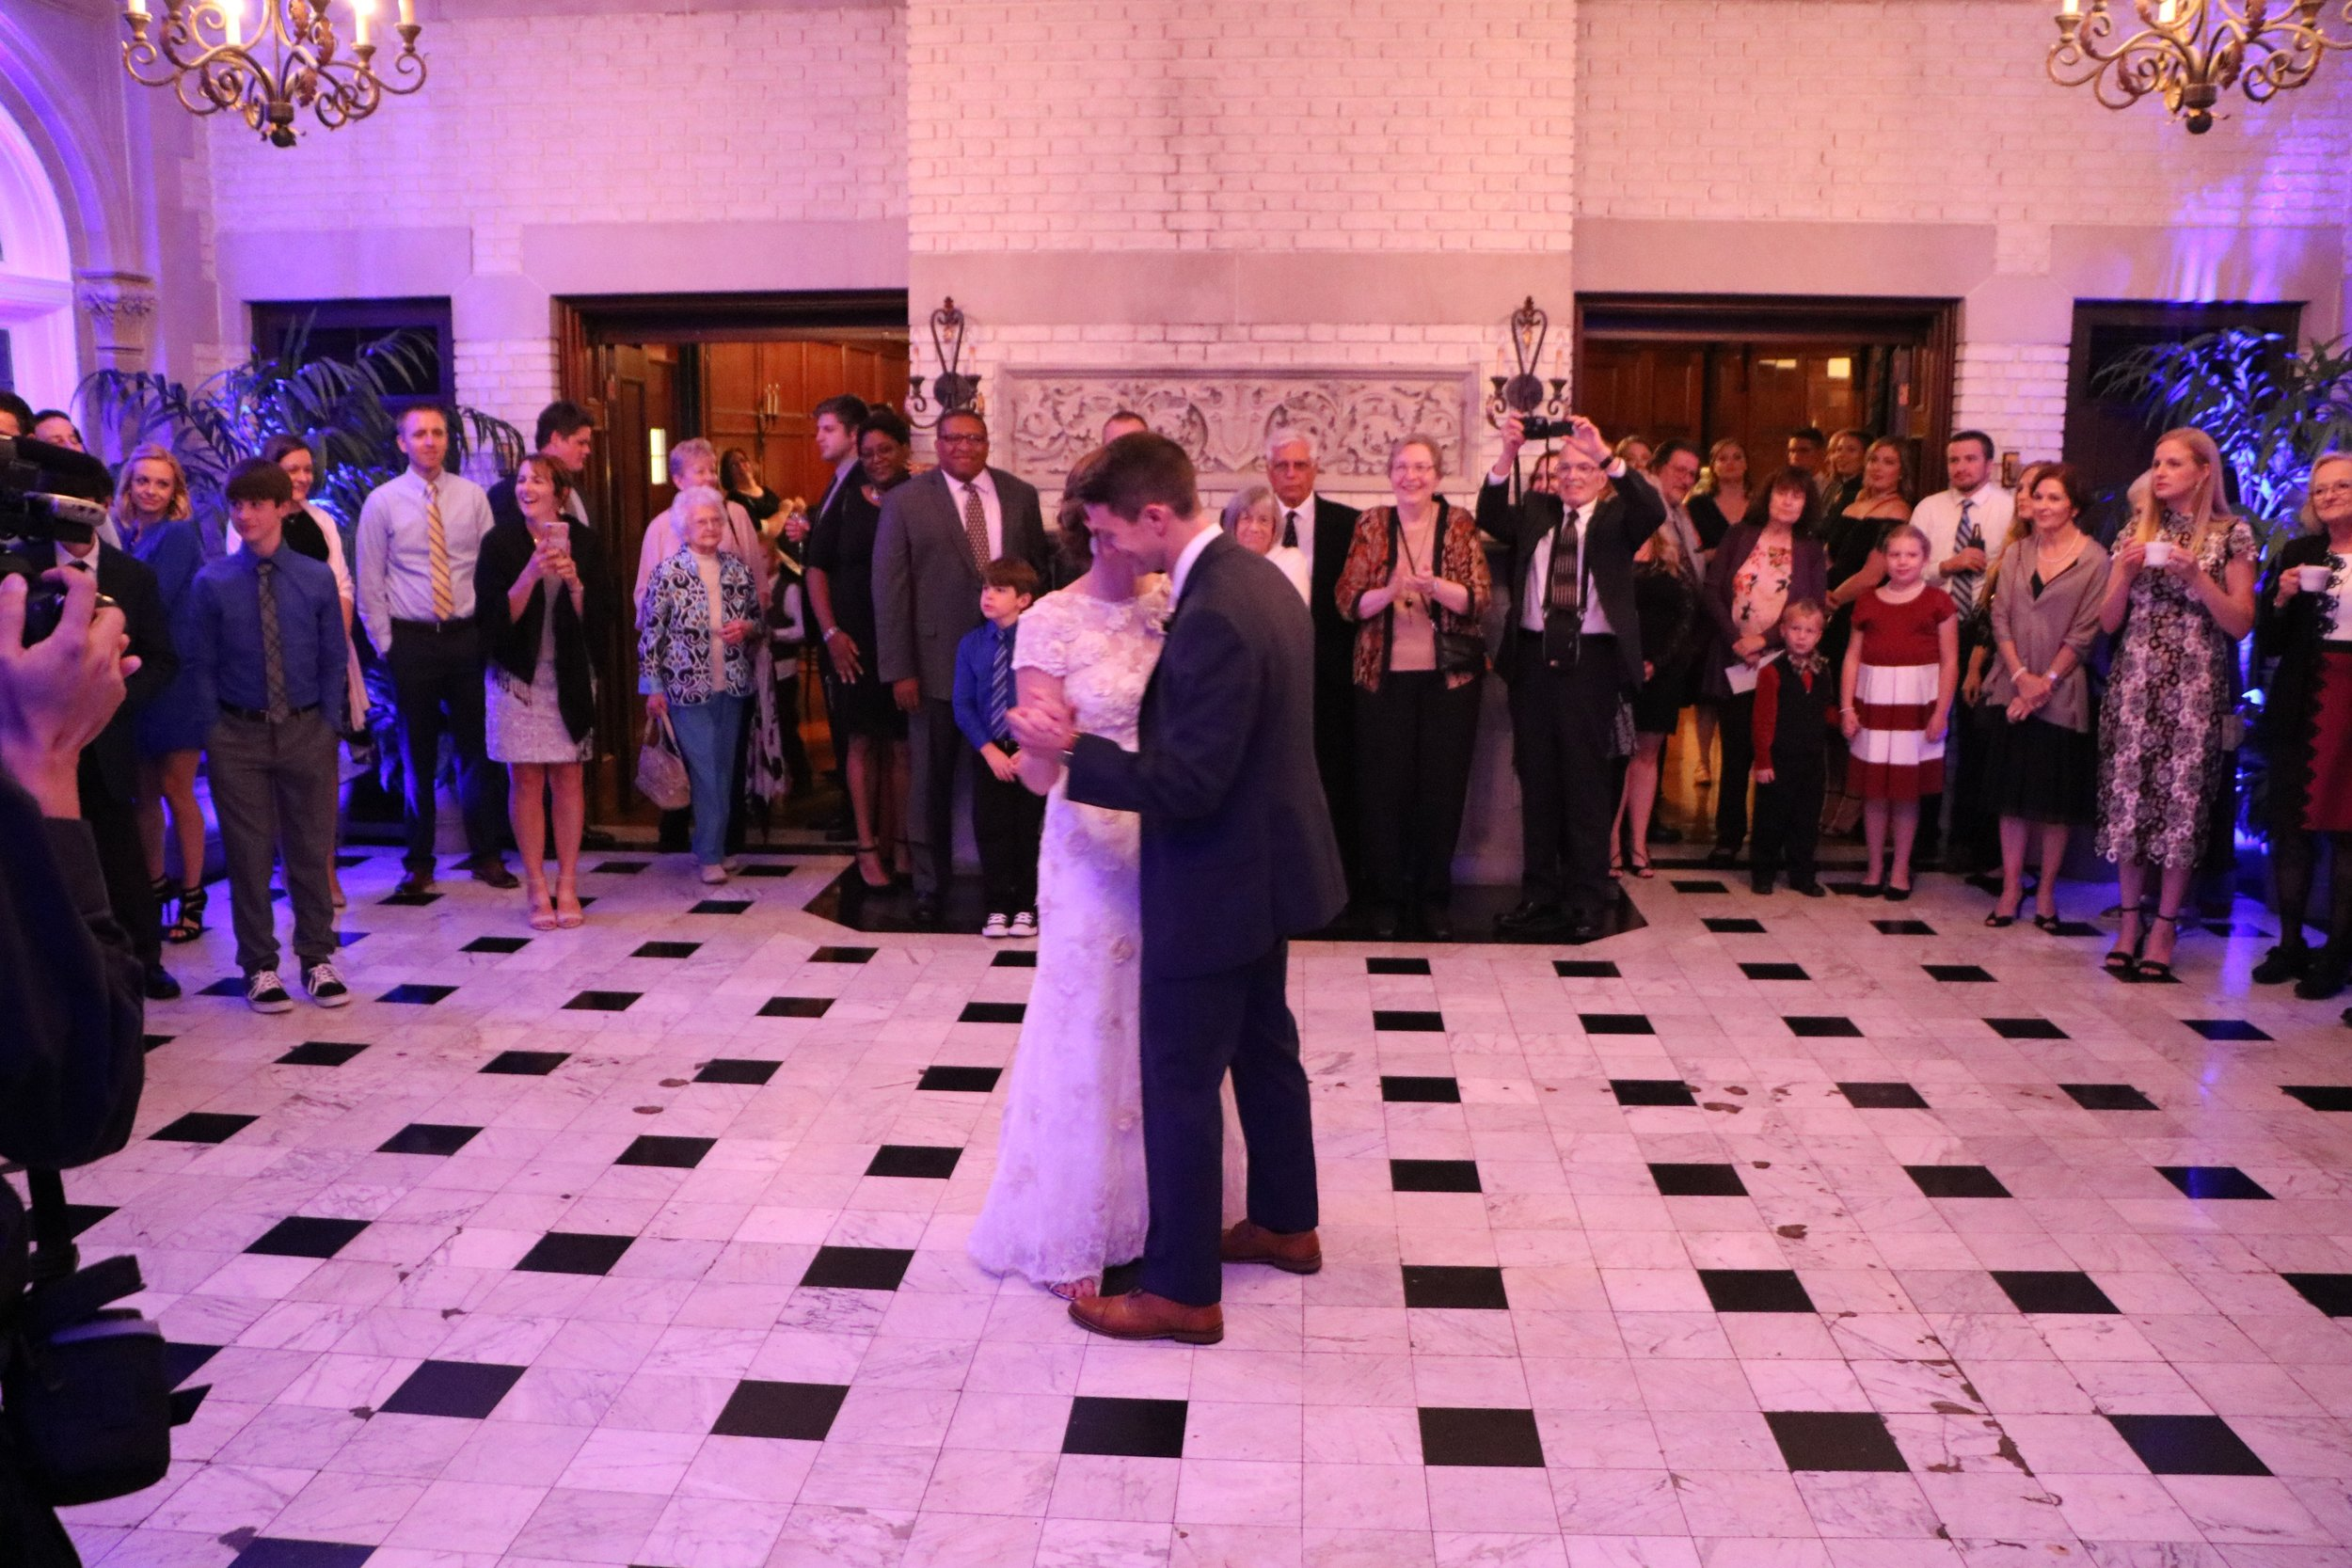 """Jessica & Greg's 1st dance """"What Would I Do Without You"""" by Drew Holcomb & the Neighbors"""